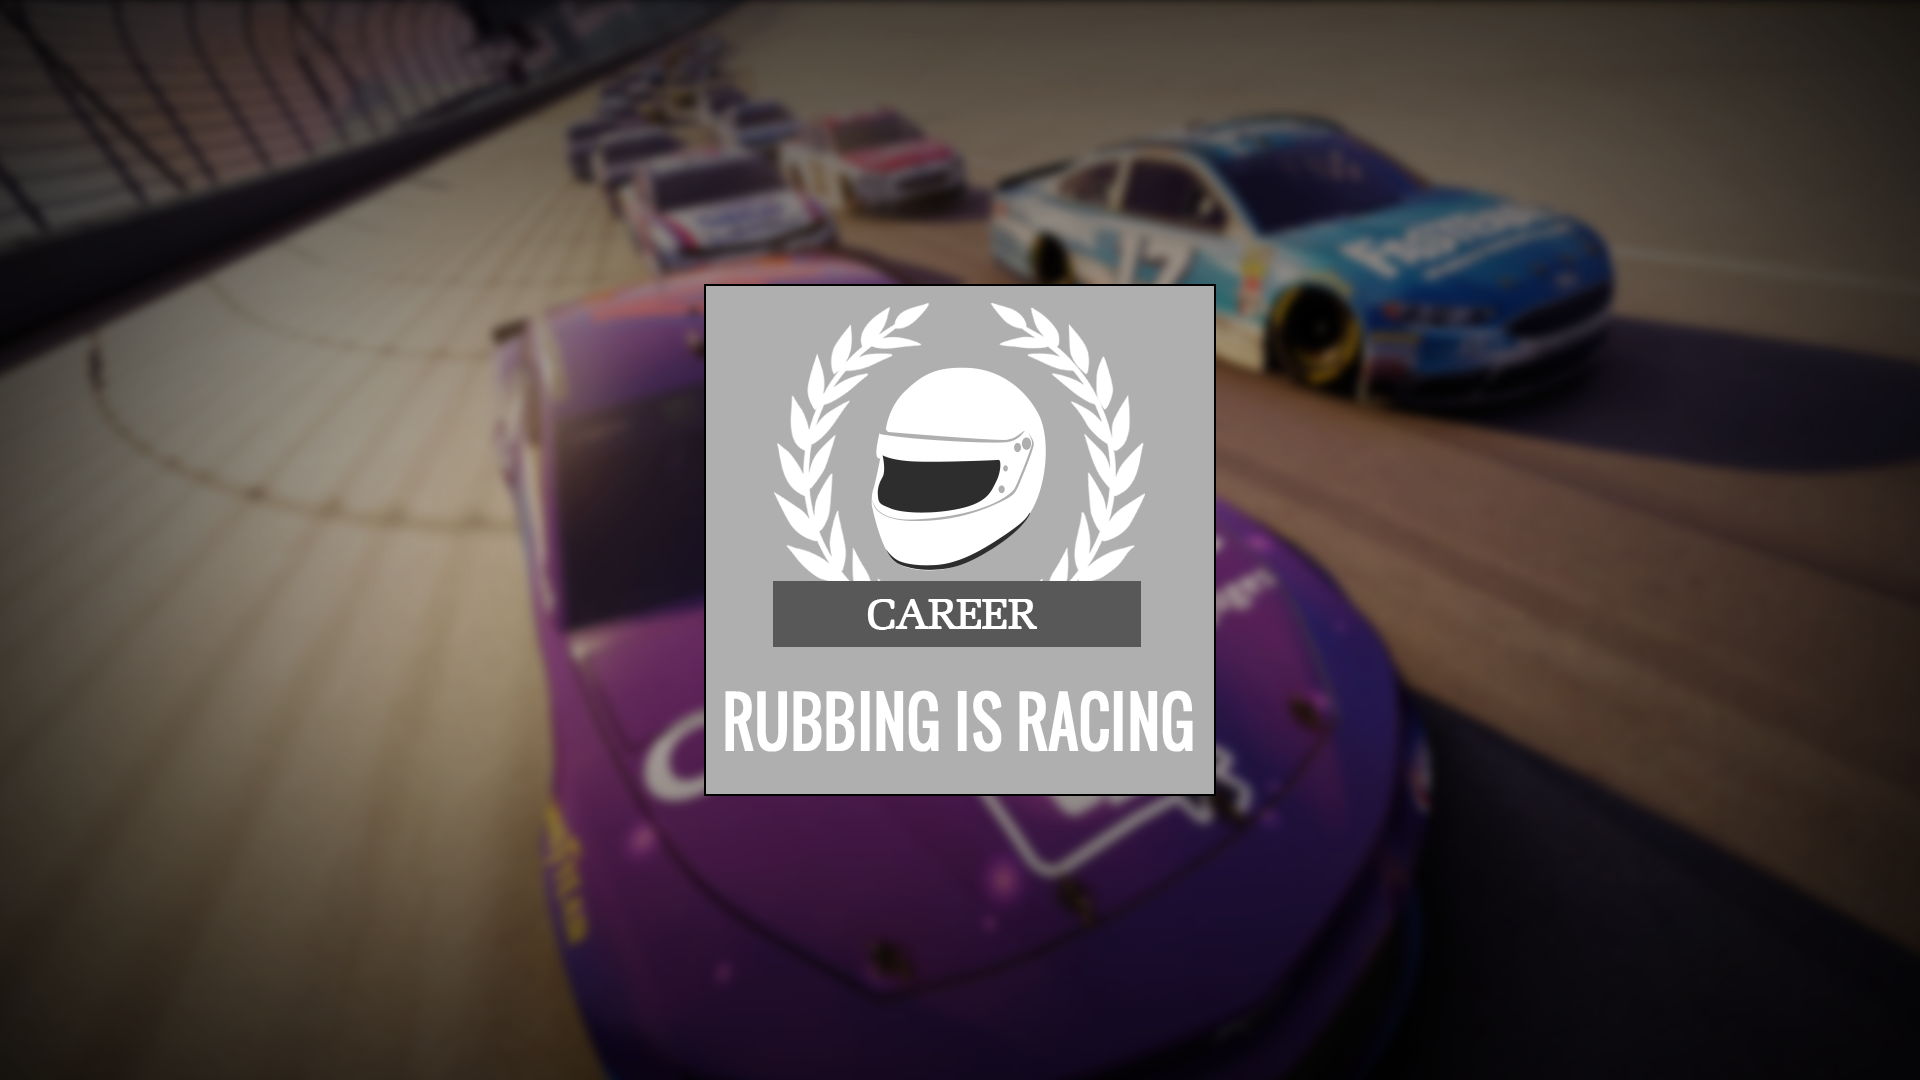 Rubbing is Racing